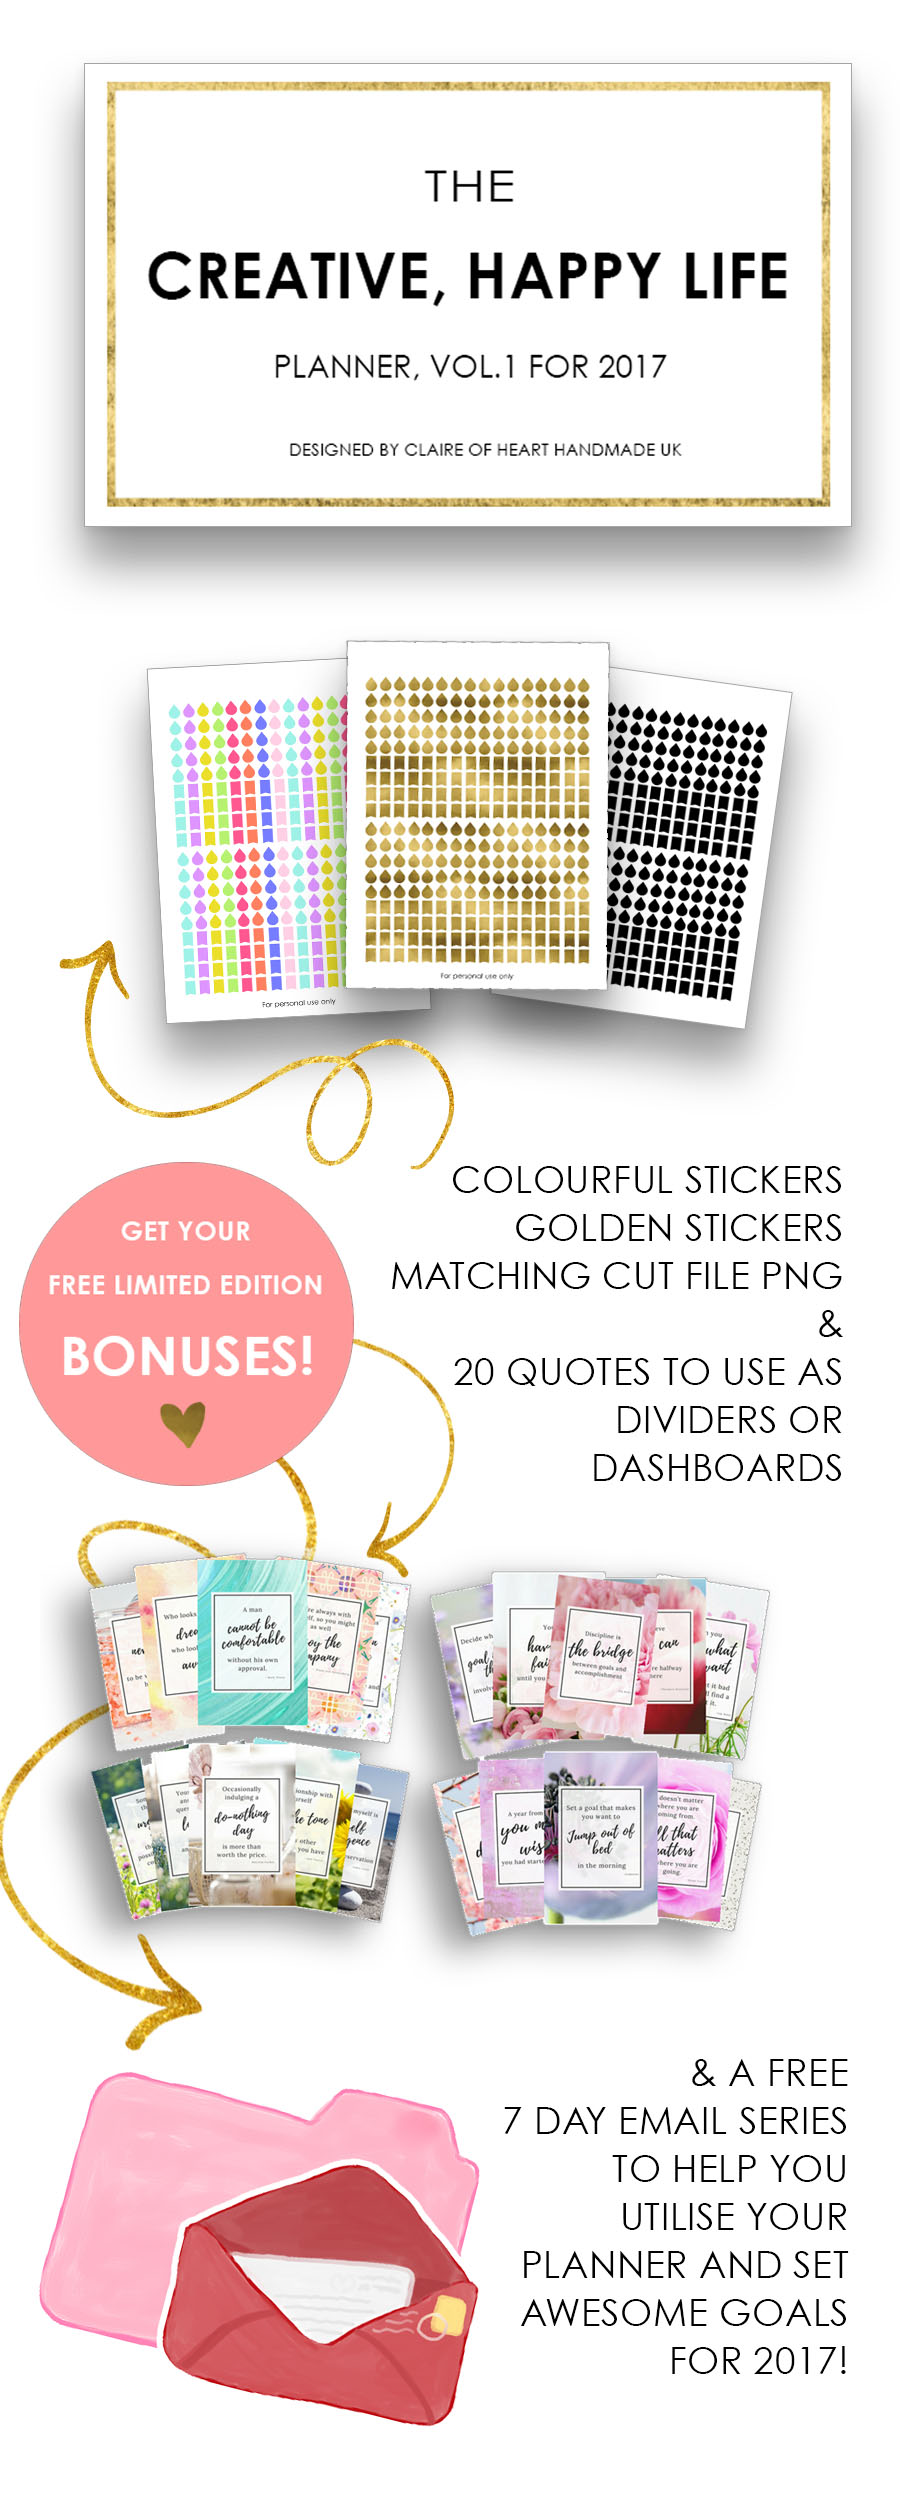 Creative Happy Life Planner Bonuses